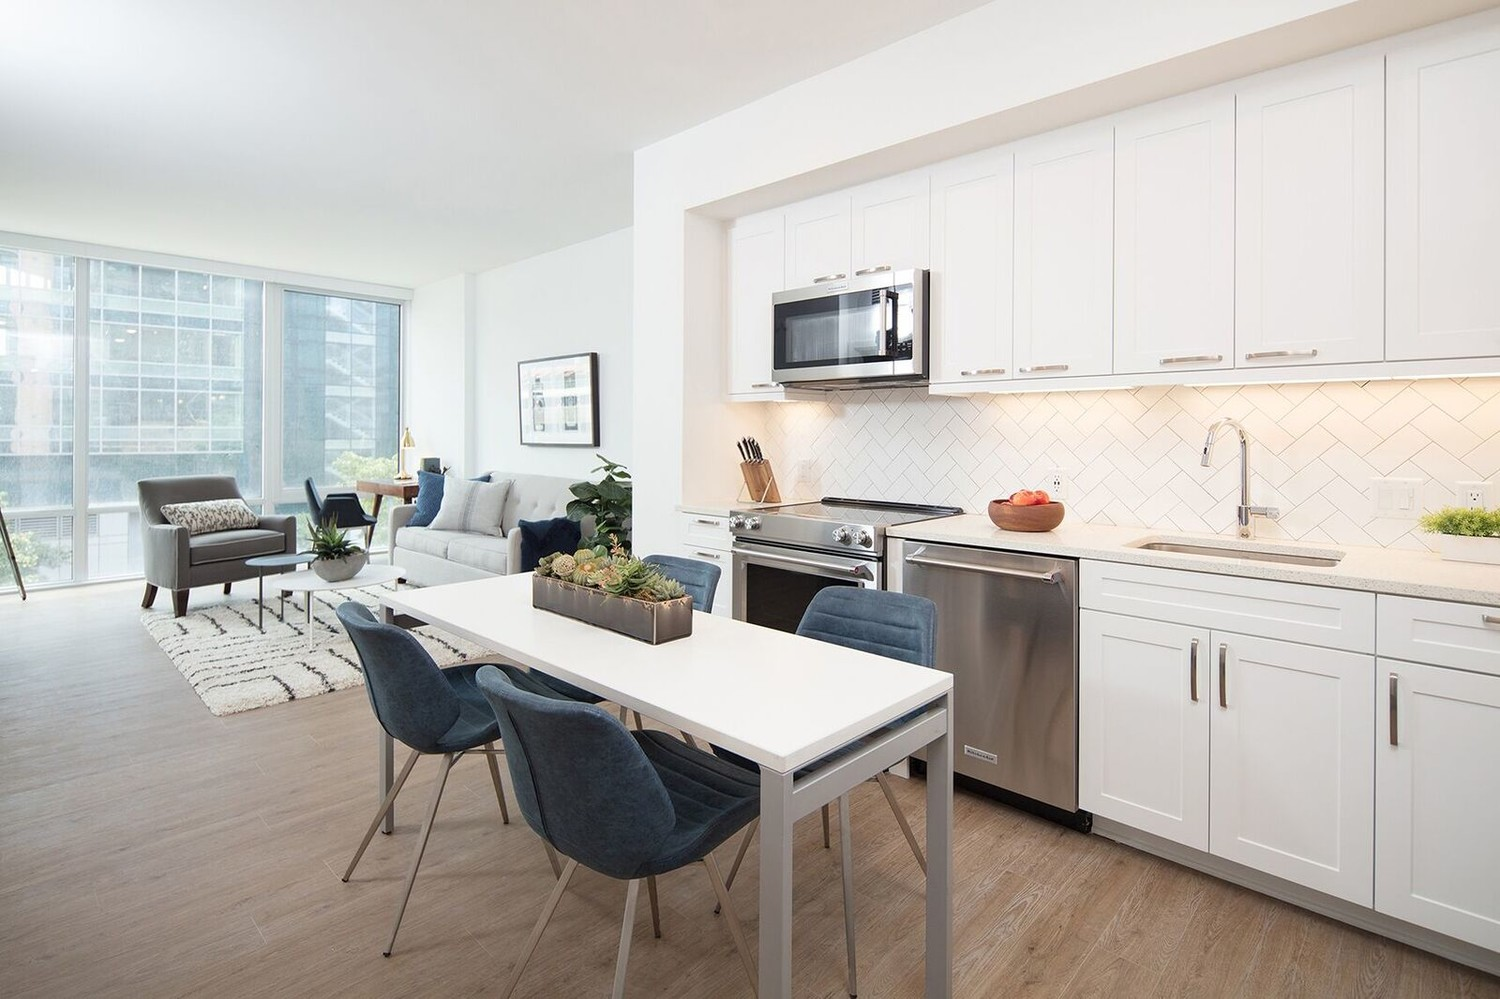 Brand New, Luxury Furnished Apartments (1 Bed, 1 Bath) (Blocks from Union Station)